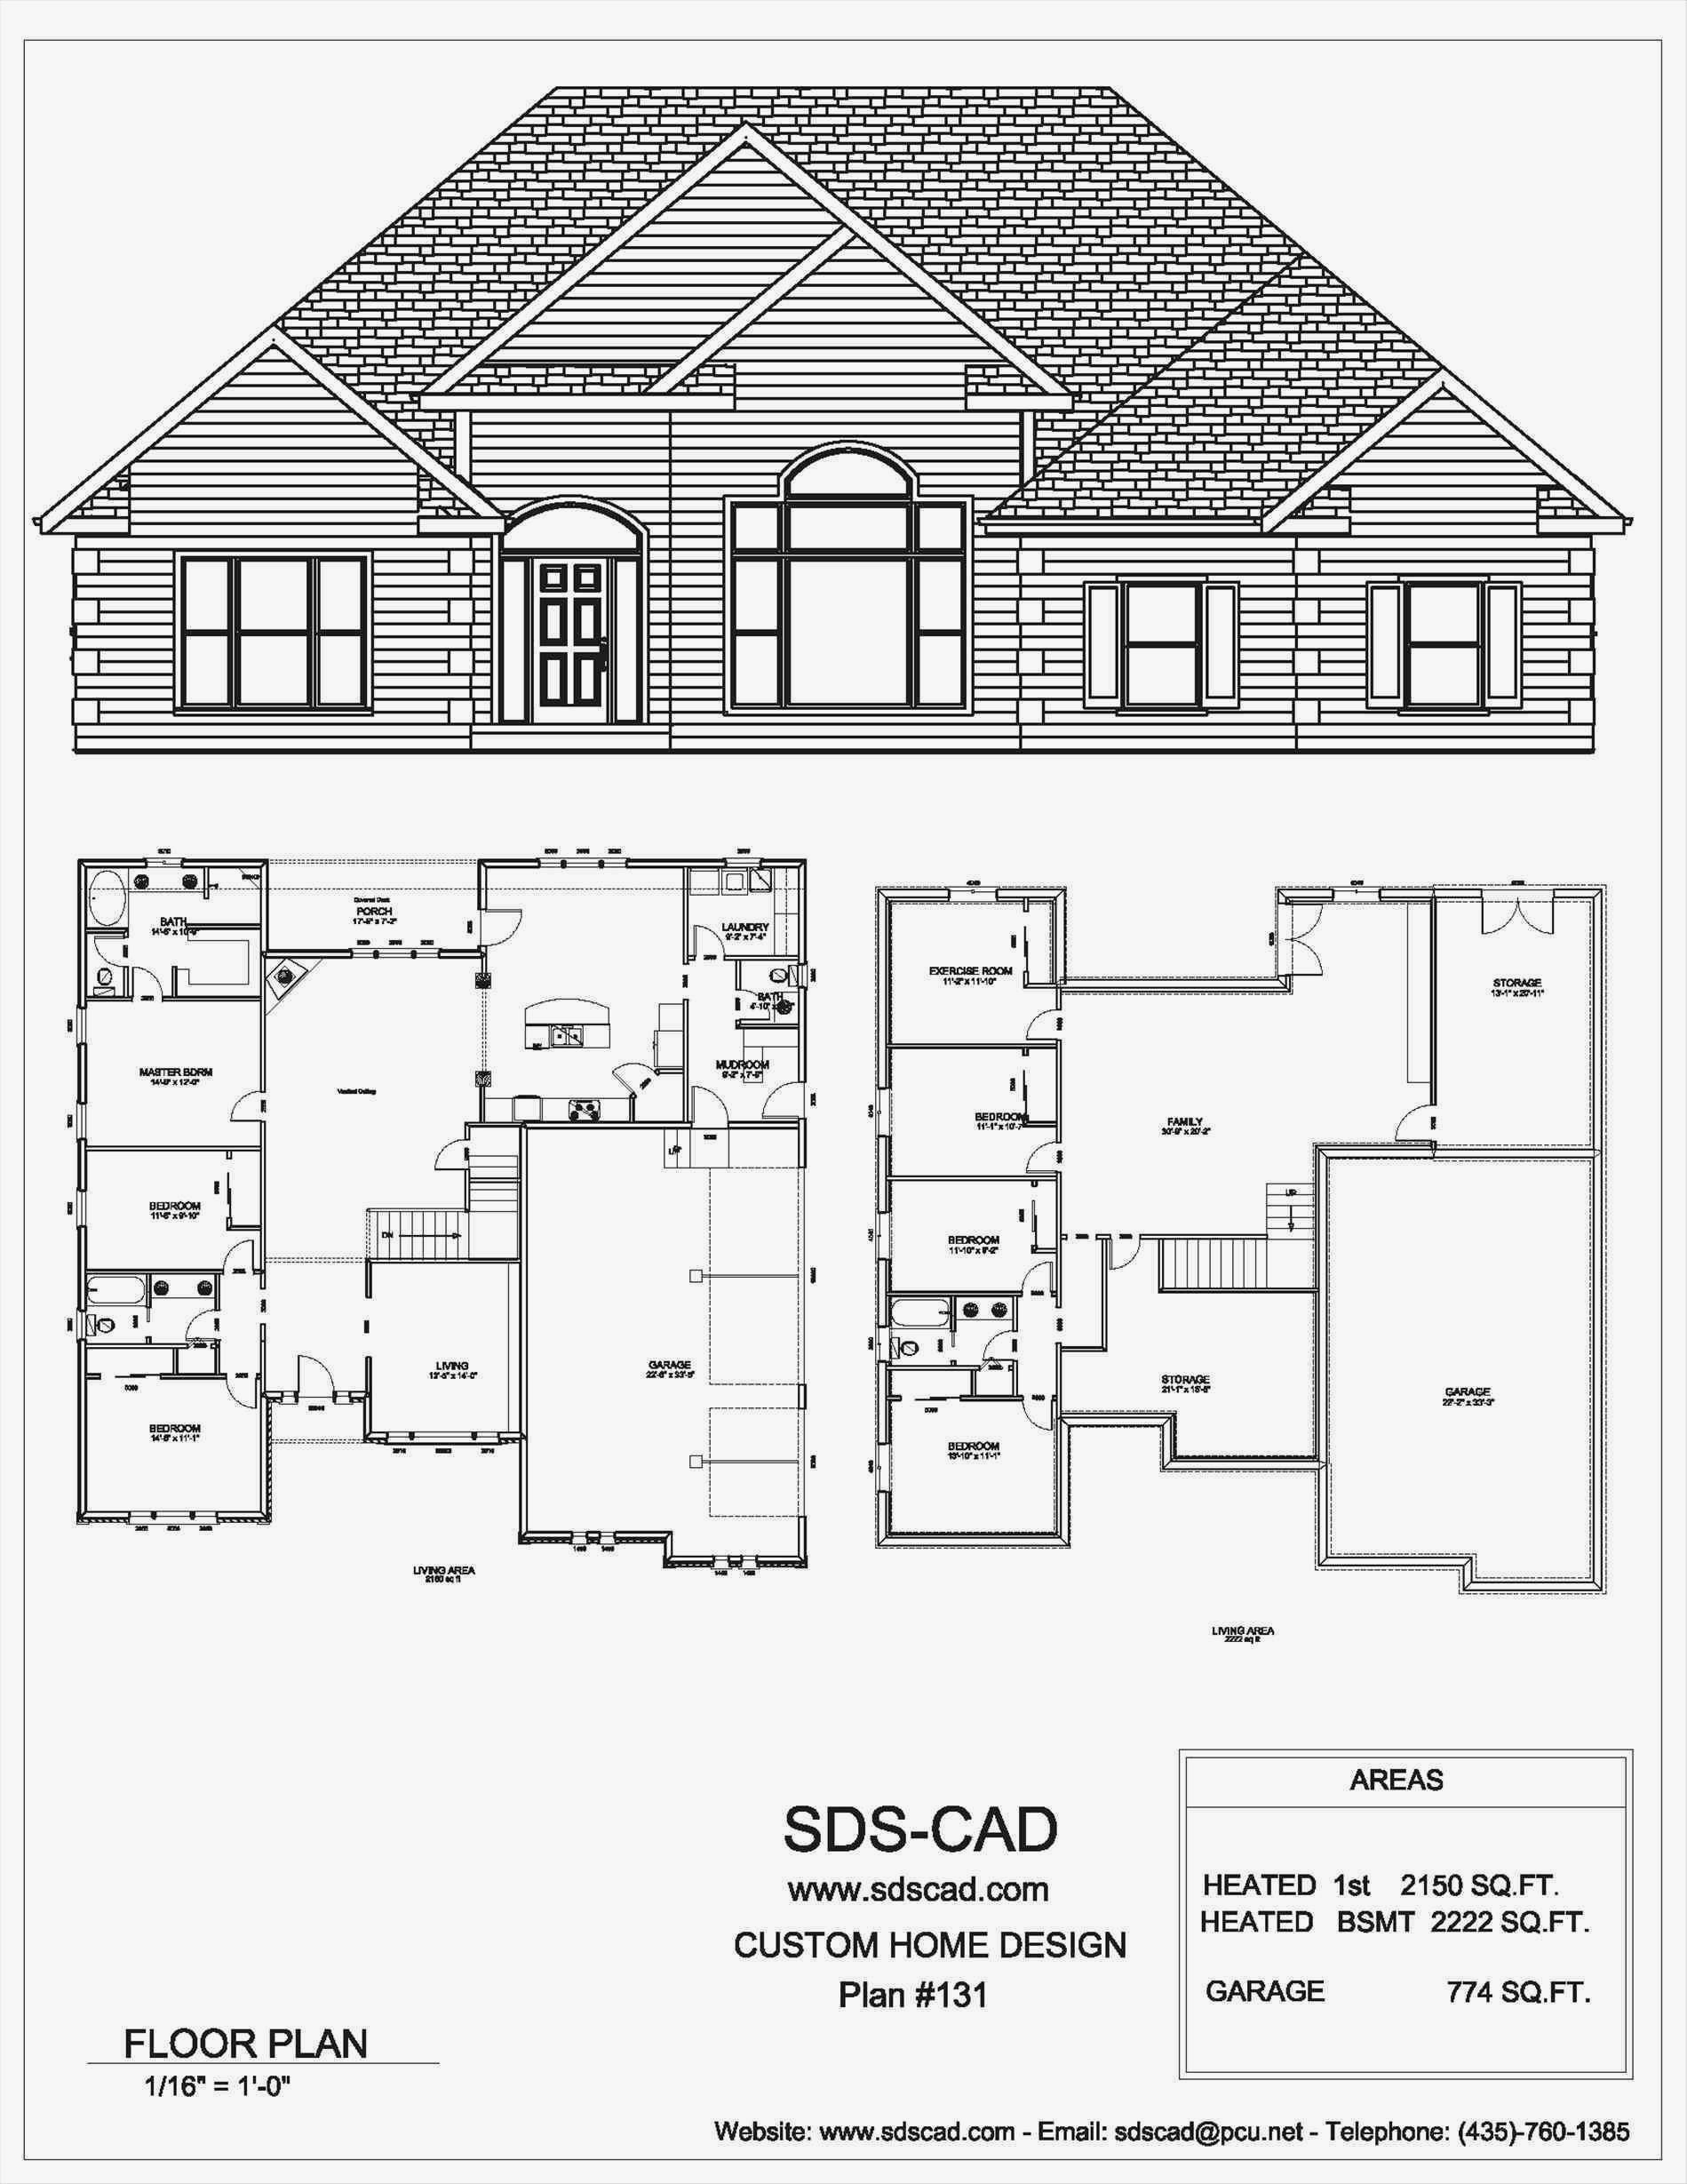 house plan creator beautiful house plan generator elegant floor plan creator floor plan maker app imposing planner creator of house plan creator